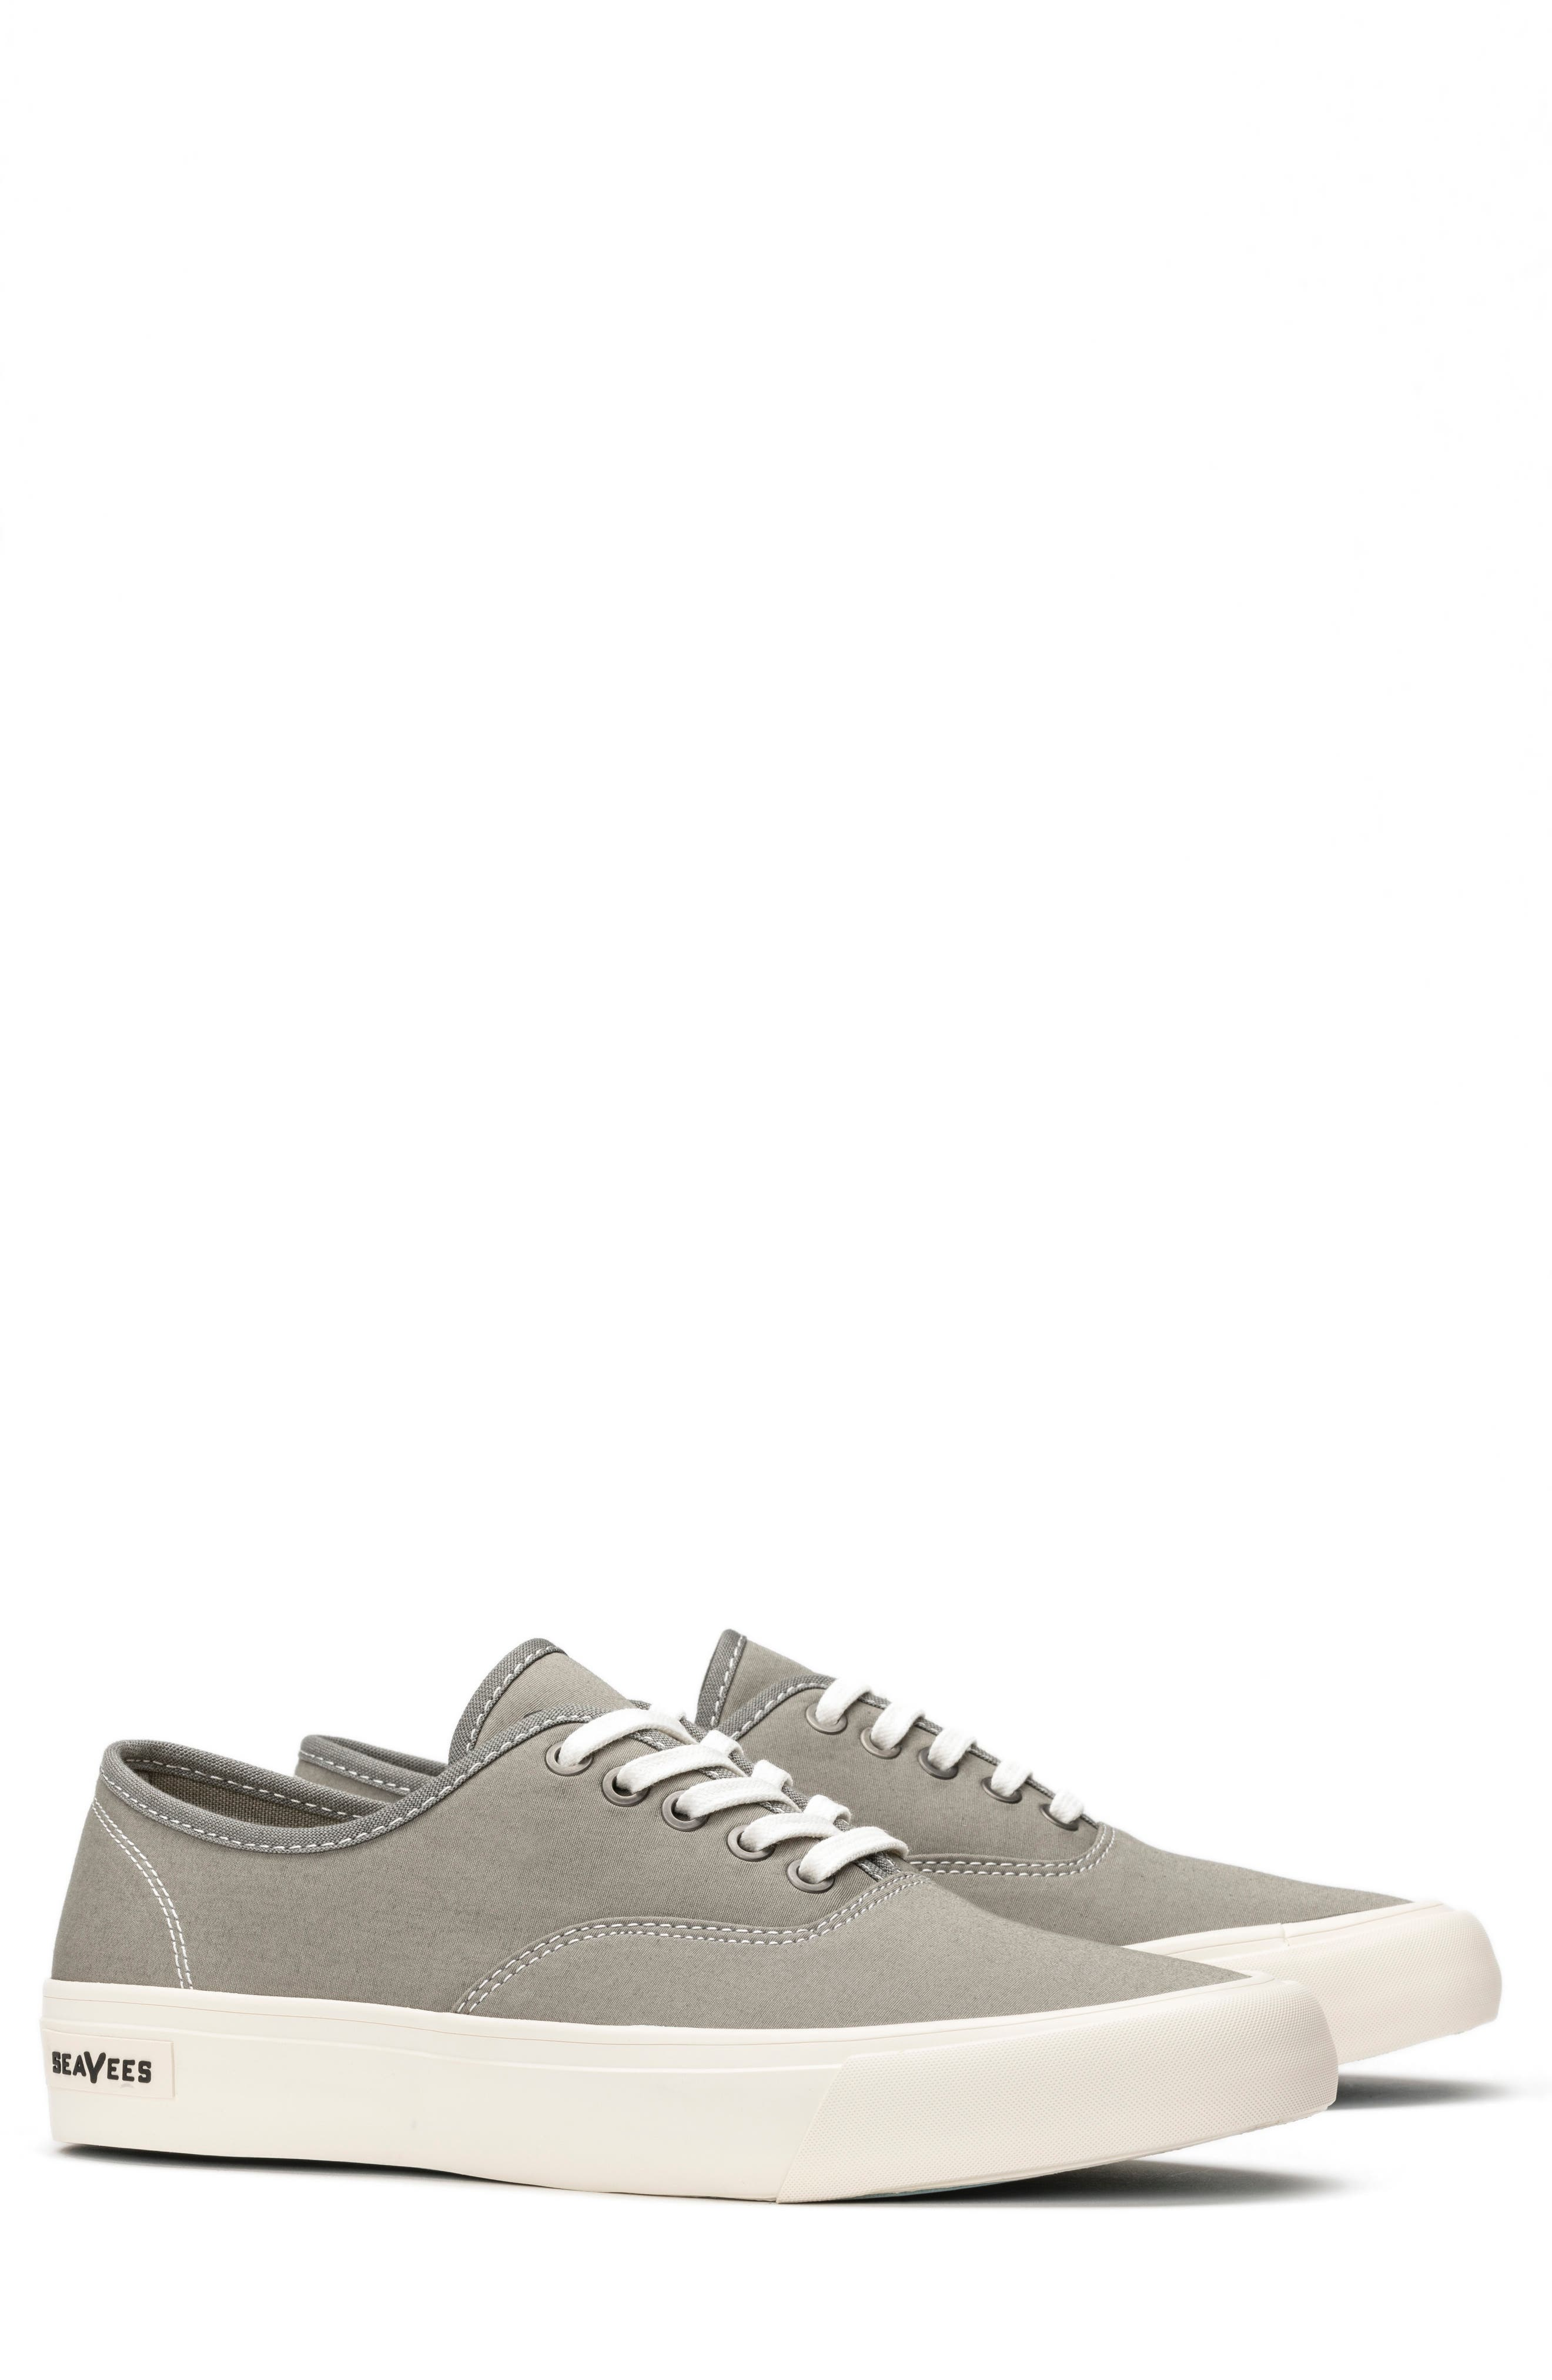 Legend Standard Sneaker,                         Main,                         color, GRANITE GREY